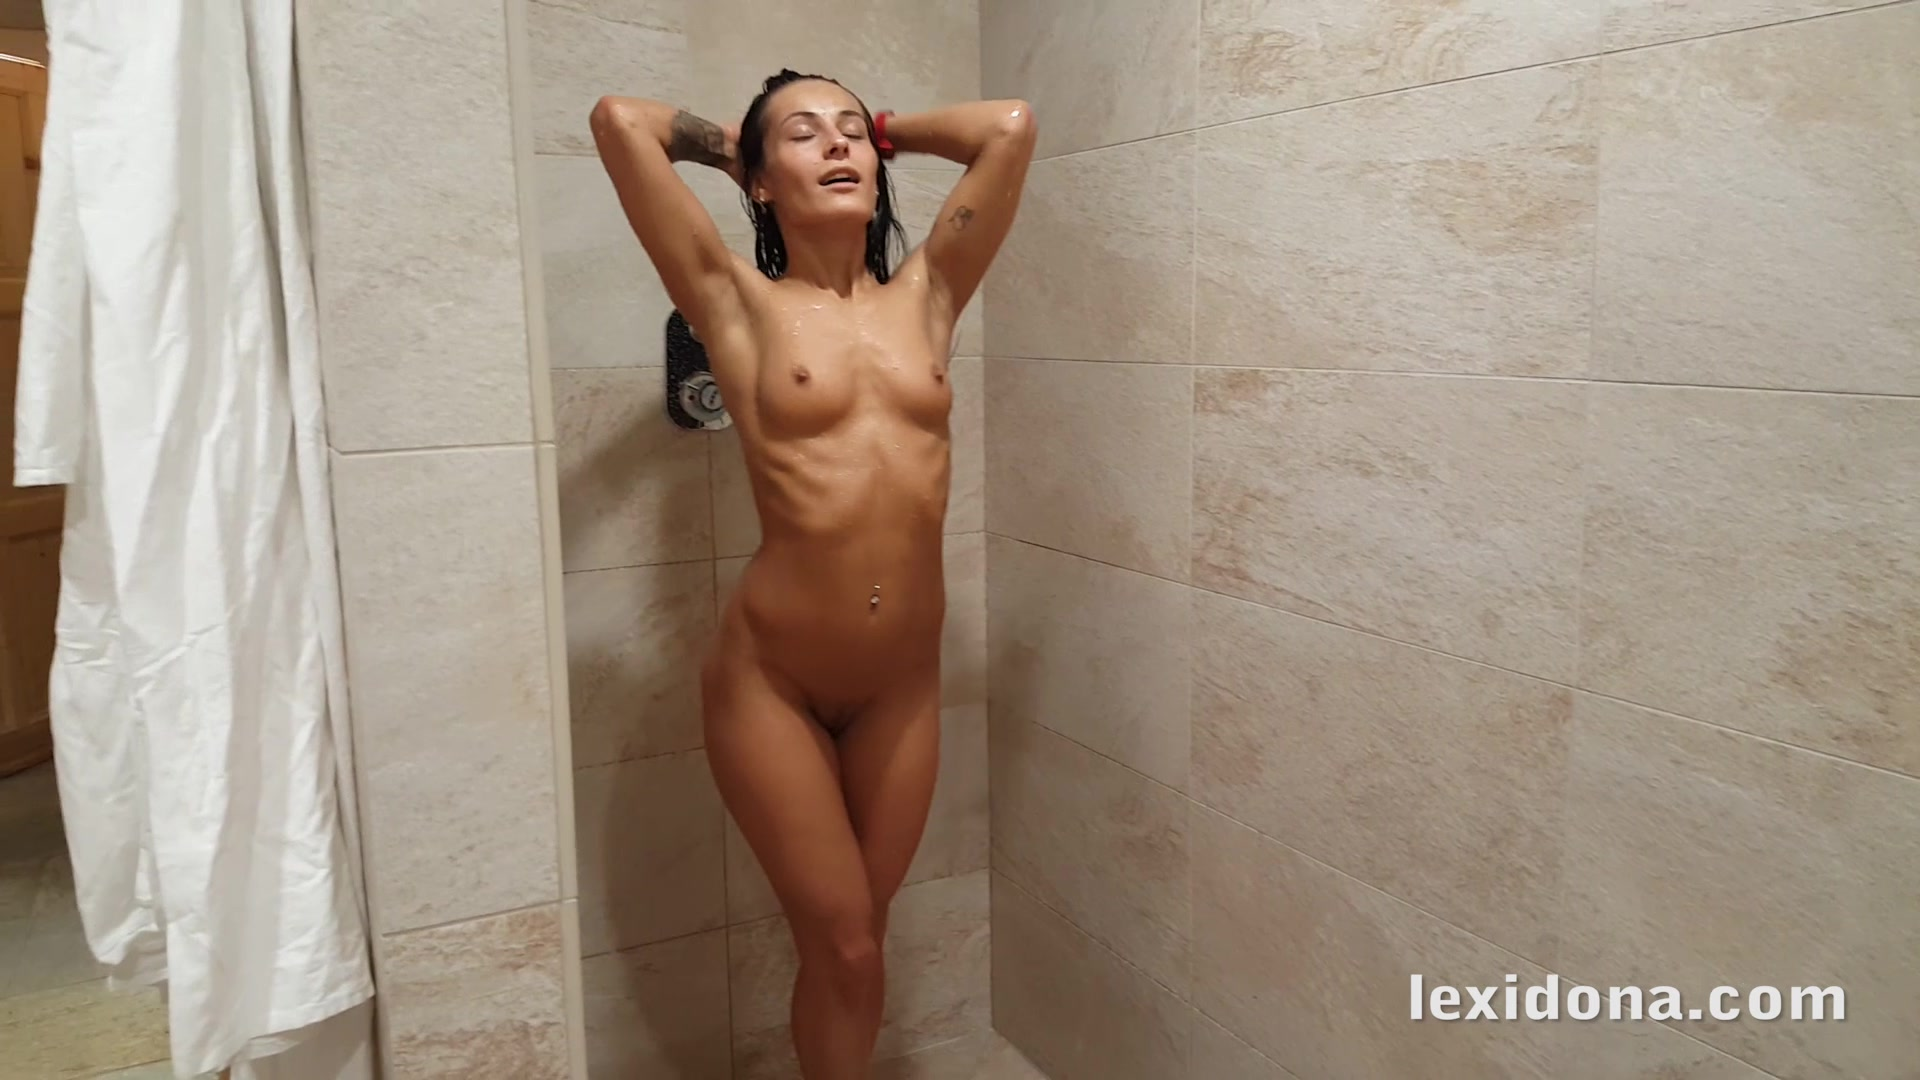 Sex in the shower for naughty babe Lexi Dona